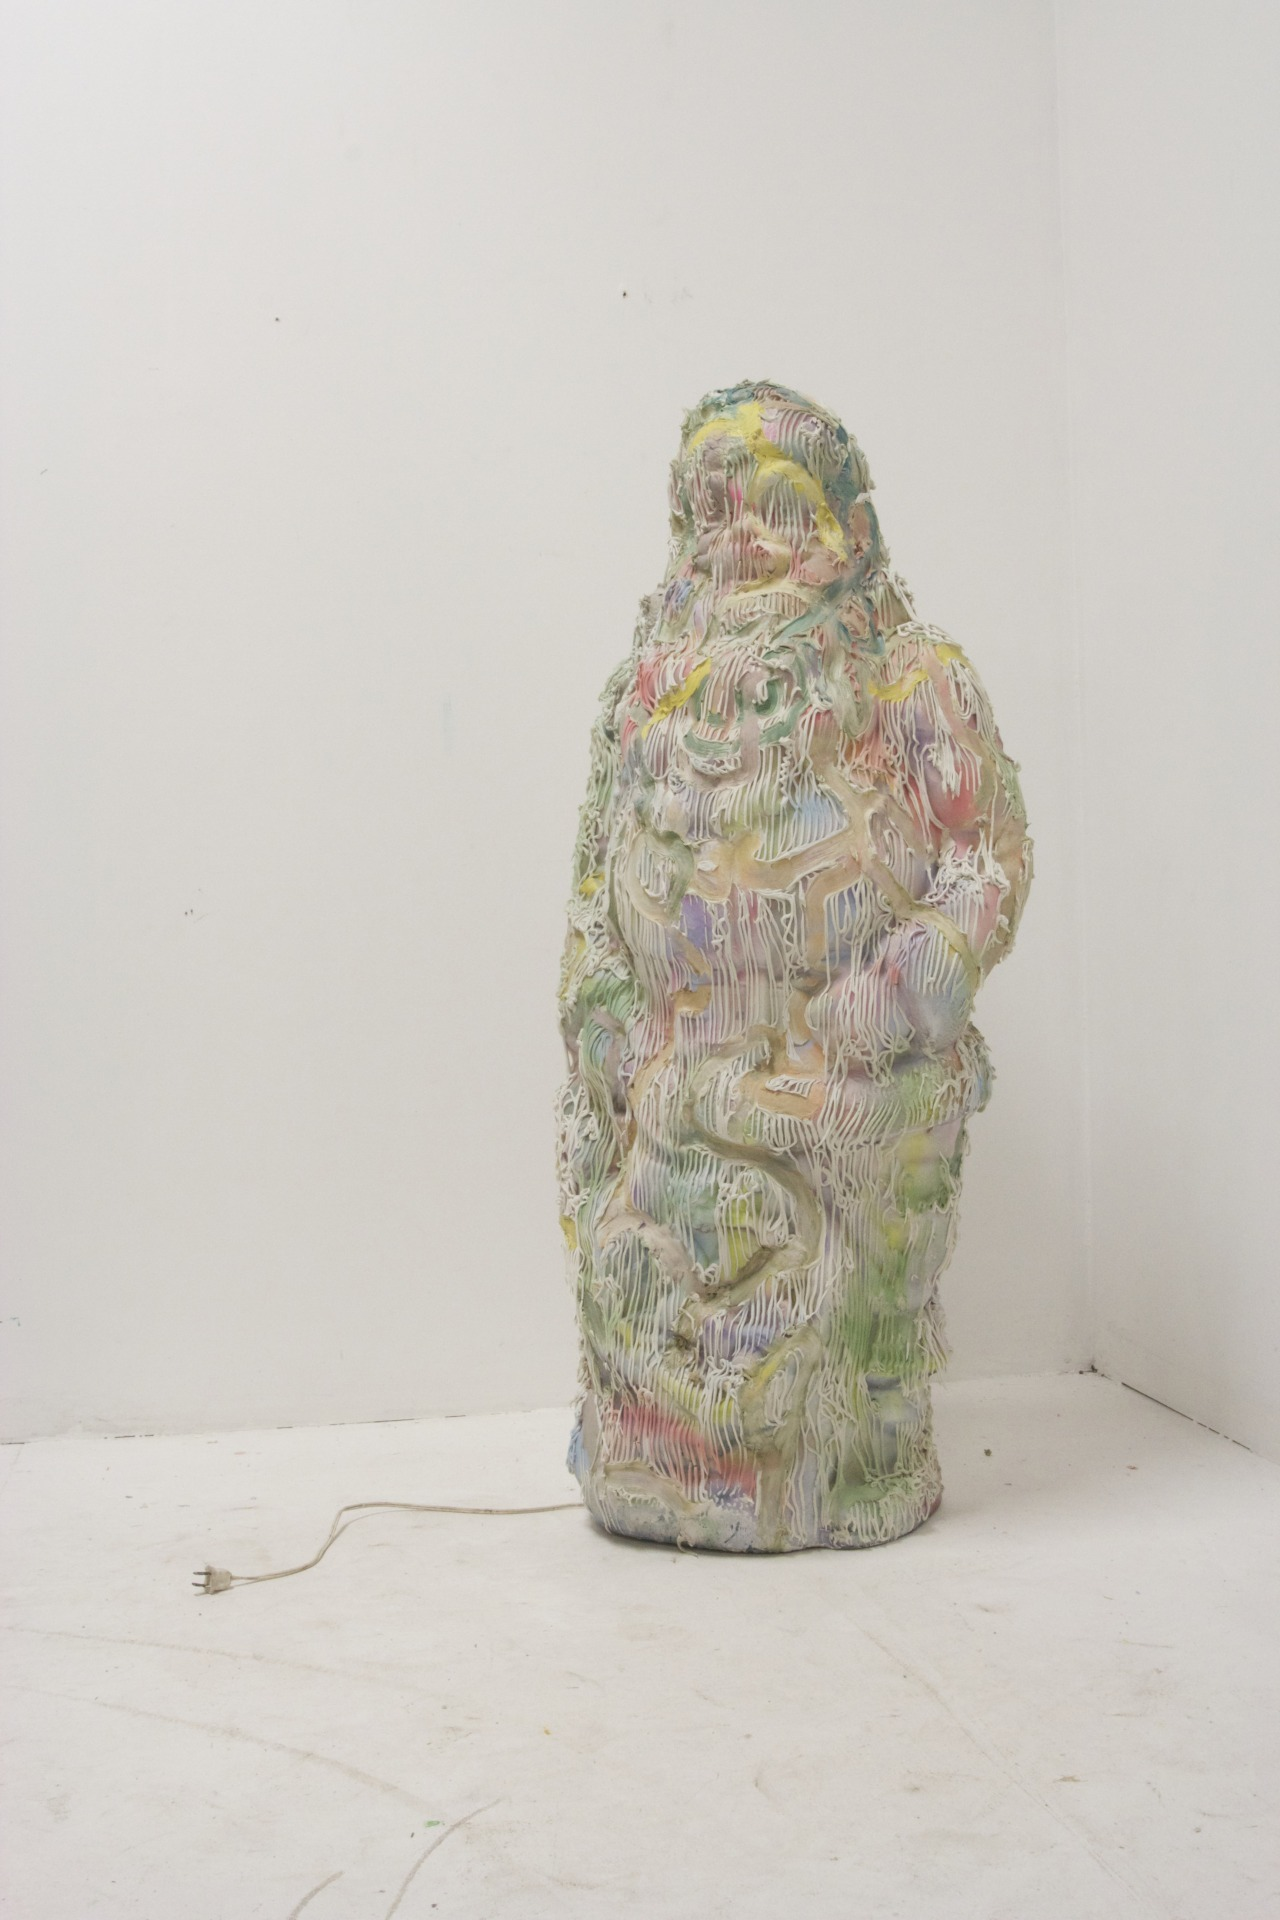 Santa, a sculptural work by Rajewski employing one of his recent material touchstones, caulk